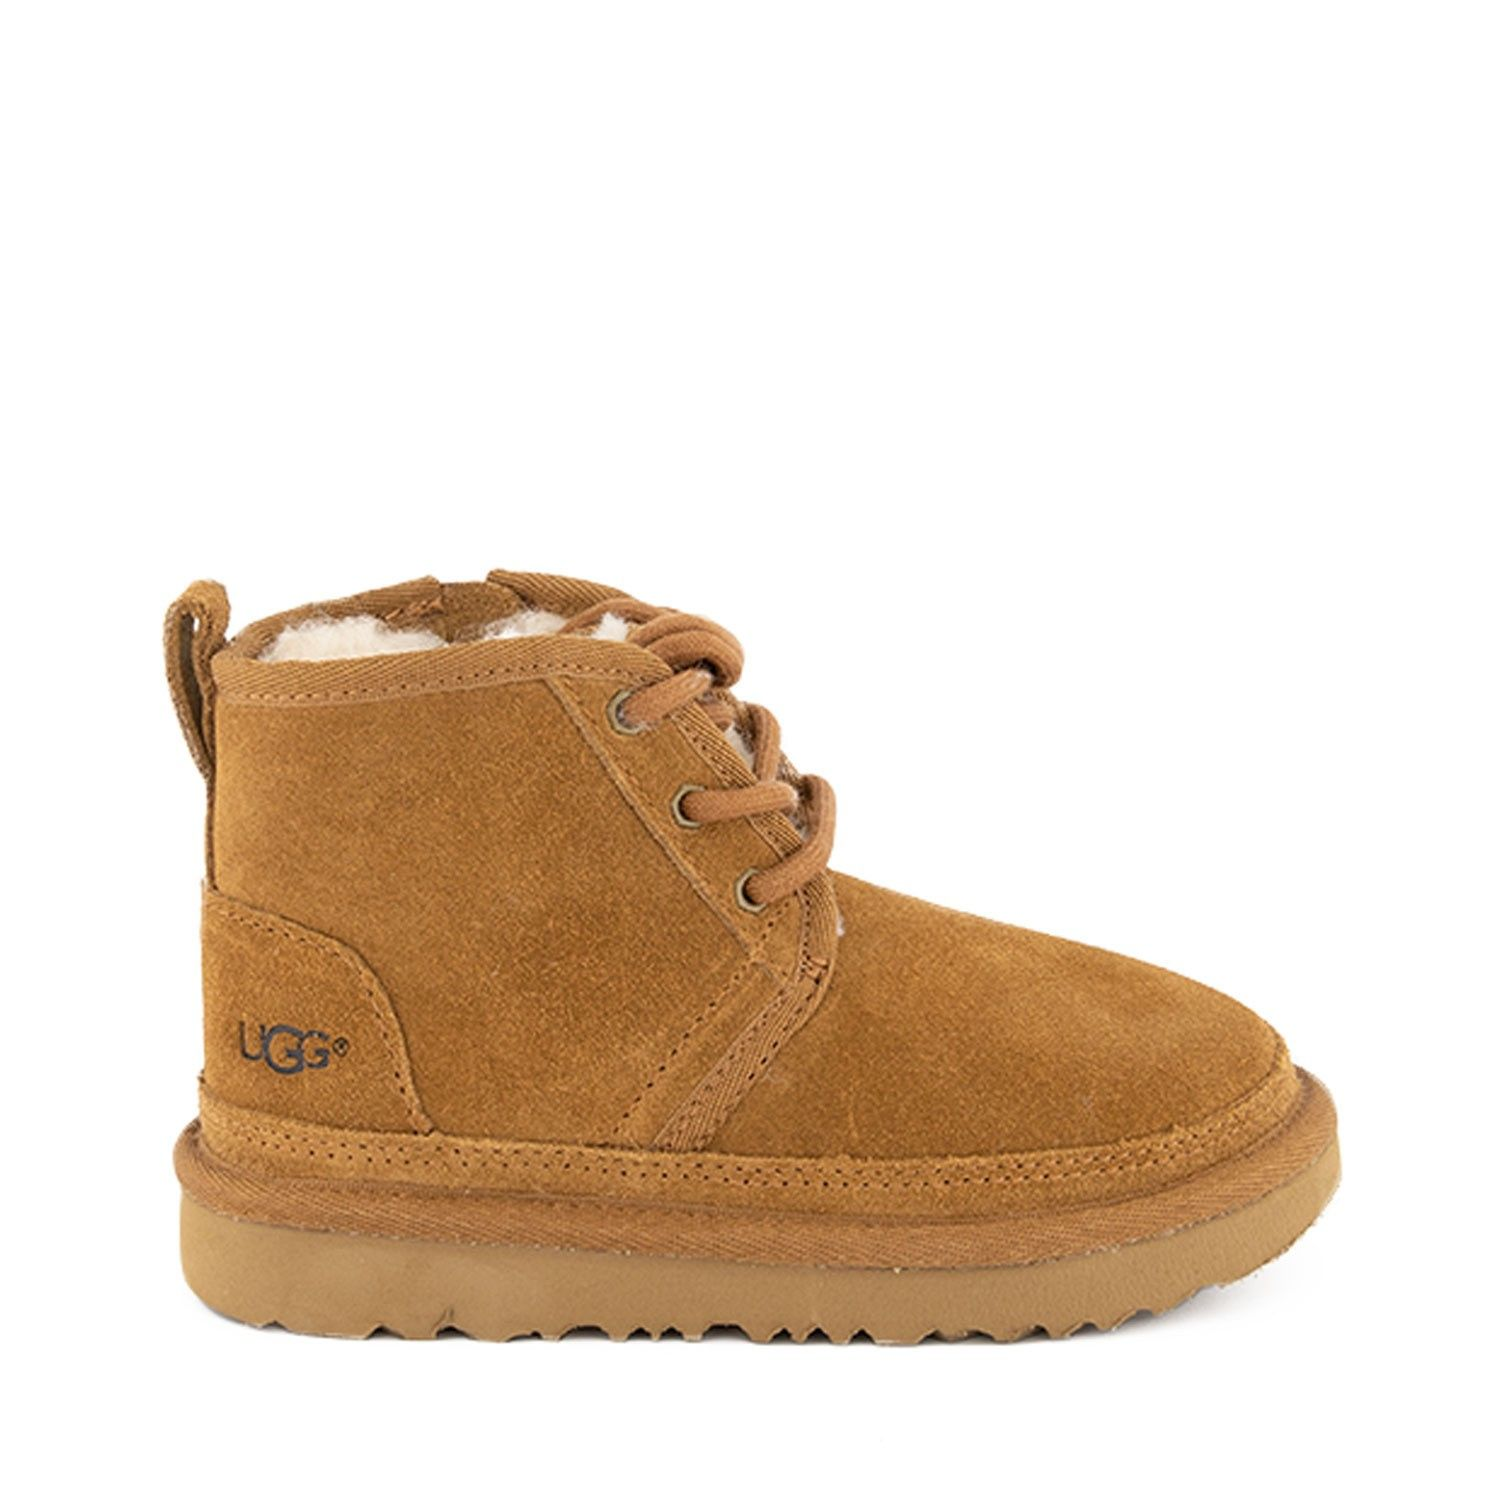 Picture of Ugg 1017320 kids boots camel